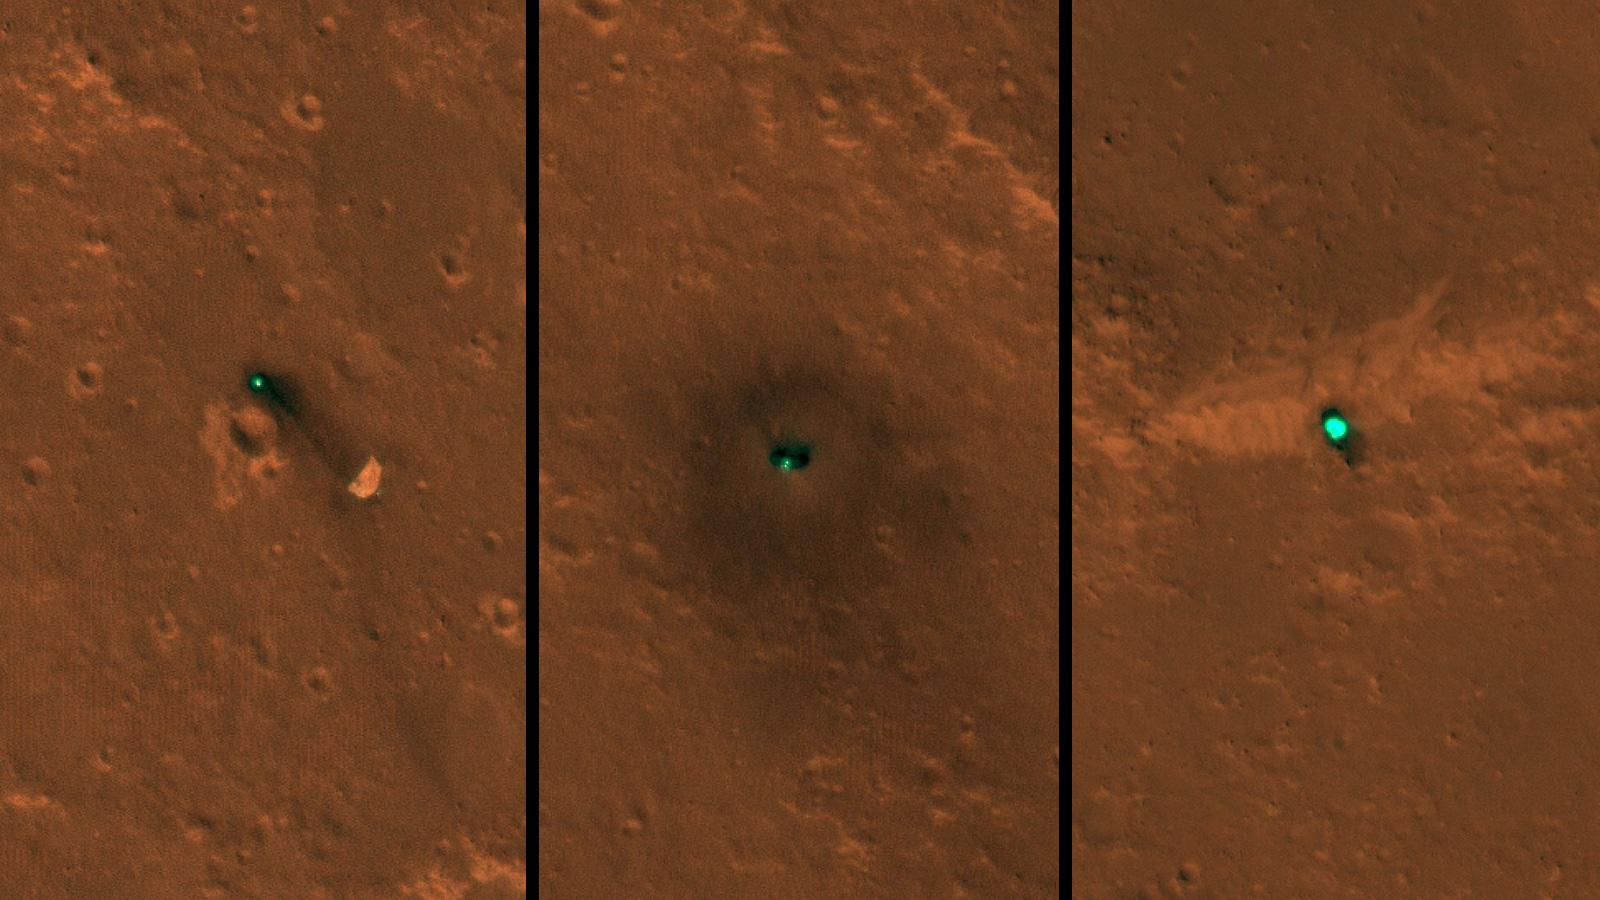 NASAs InSight spacecraft, its heat shield and its parachute were imaged on Dec. 6 and 11 by the HiRISE camera onboard NASAs Mars Reconnaissance Orbiter.